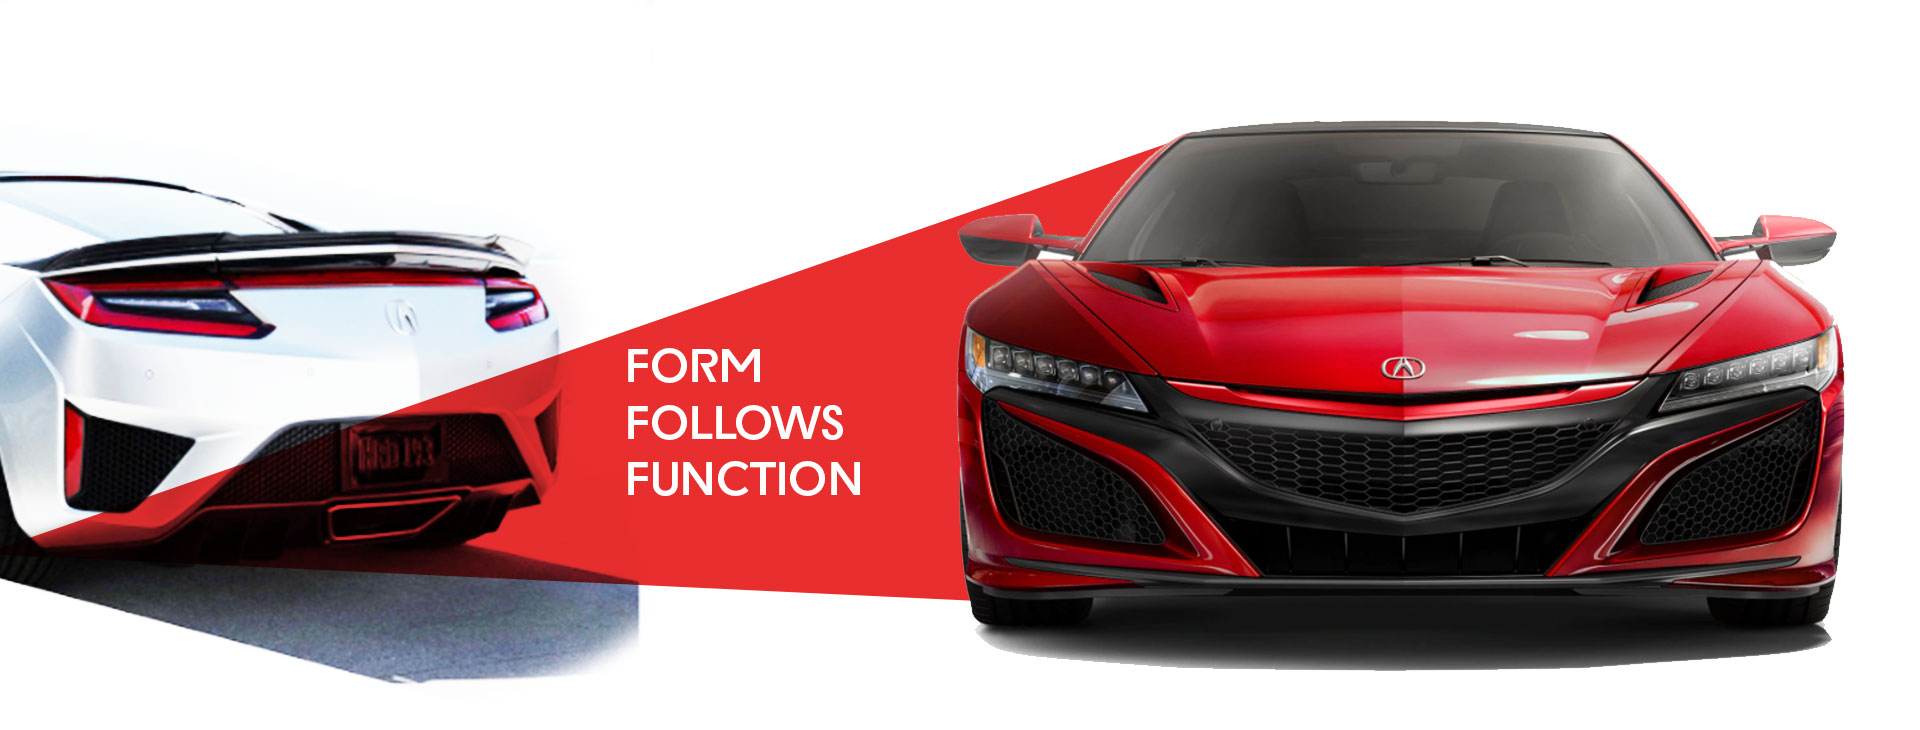 2020 Acura NSX Coupe Form Follows Function